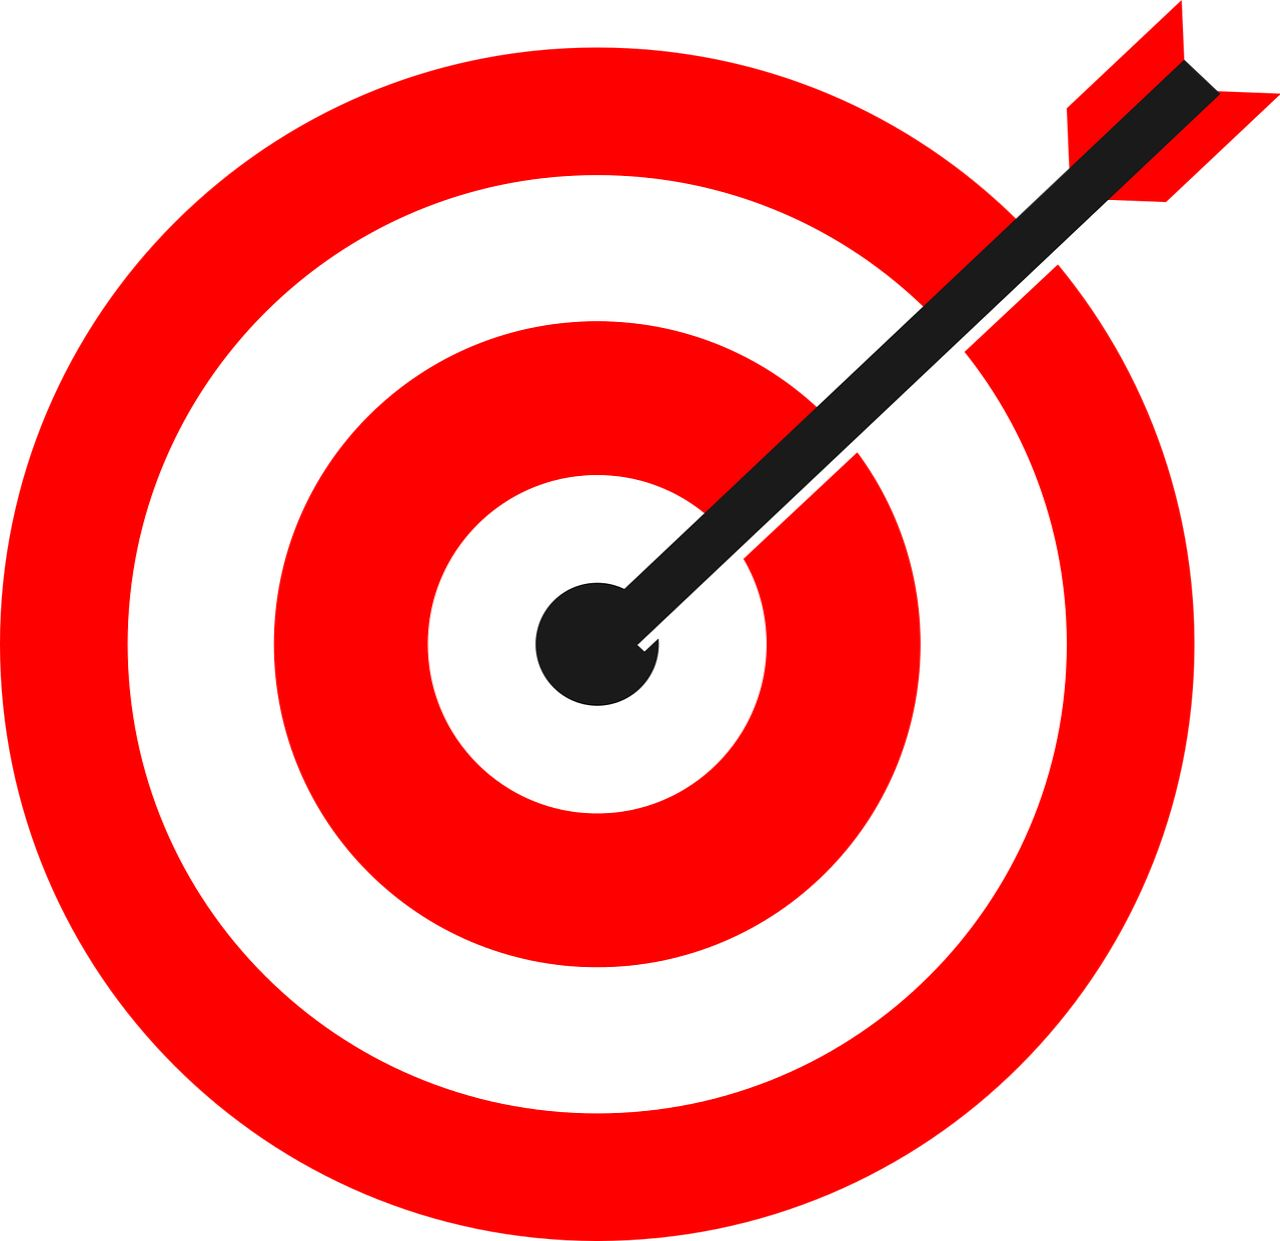 Arrow Pinched In To The Target. symbolises having goals - the most important thing in life